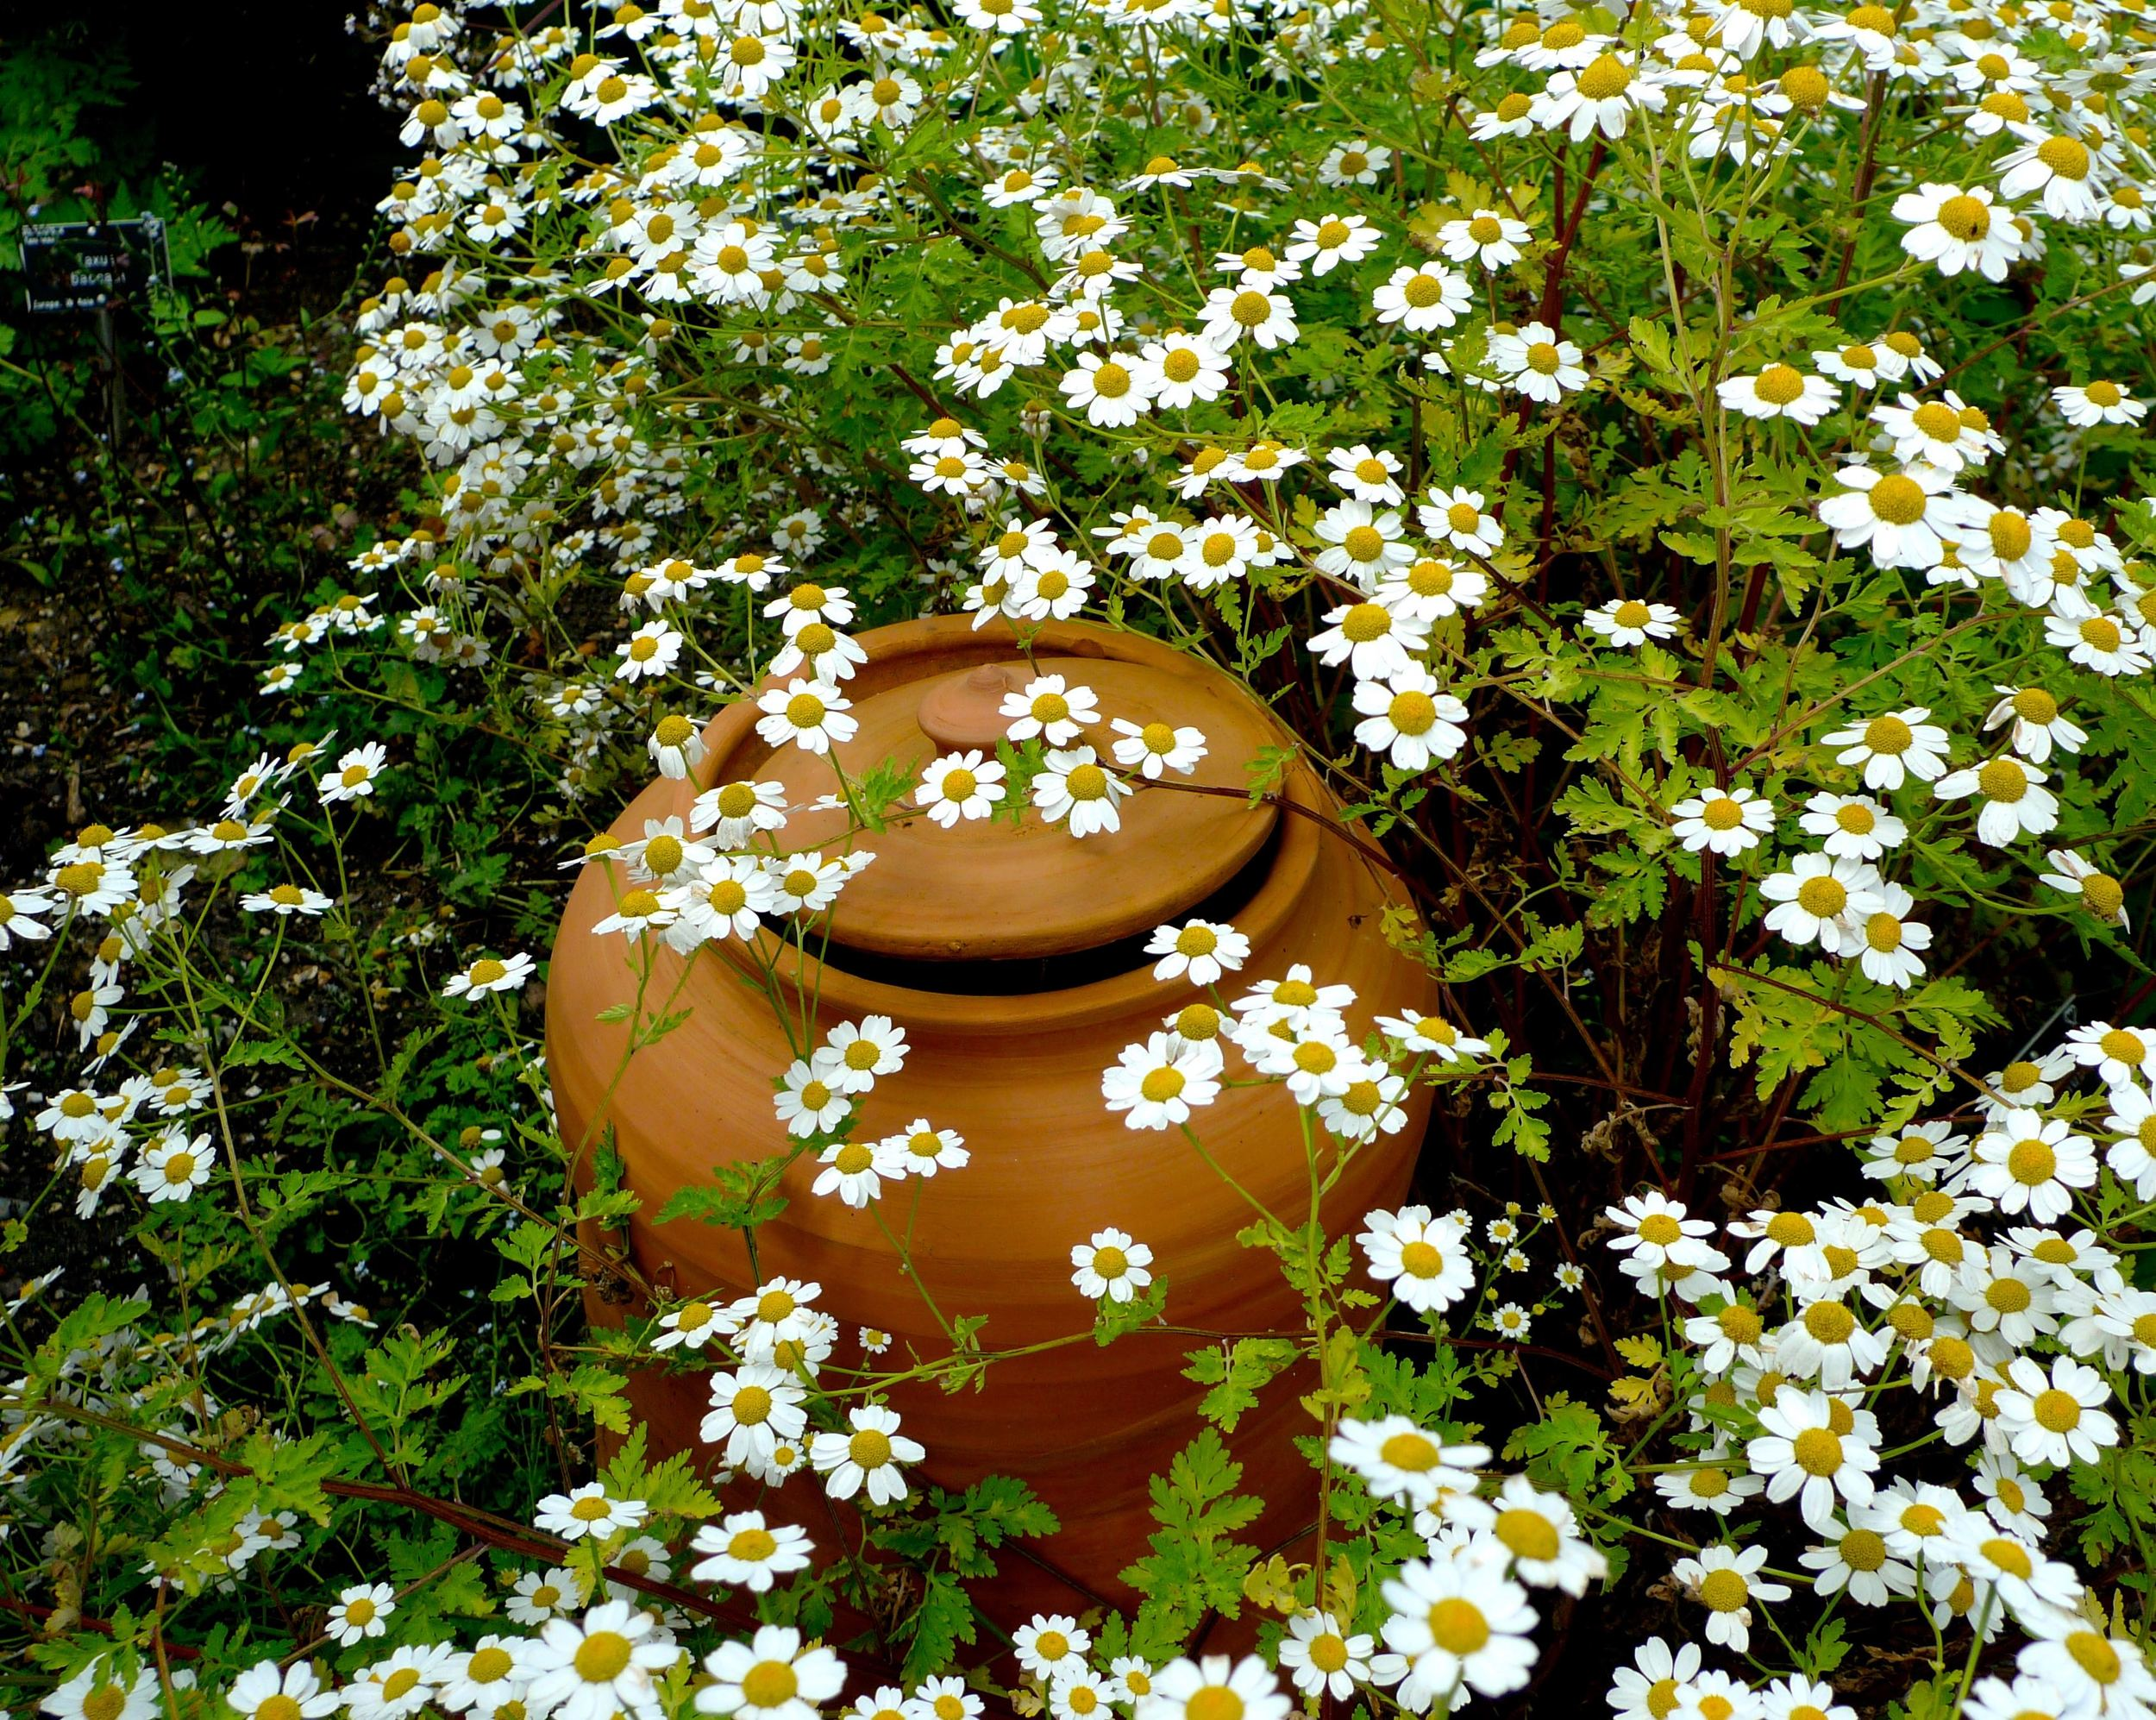 Daisy-like flowers surrounding a terracotta pot